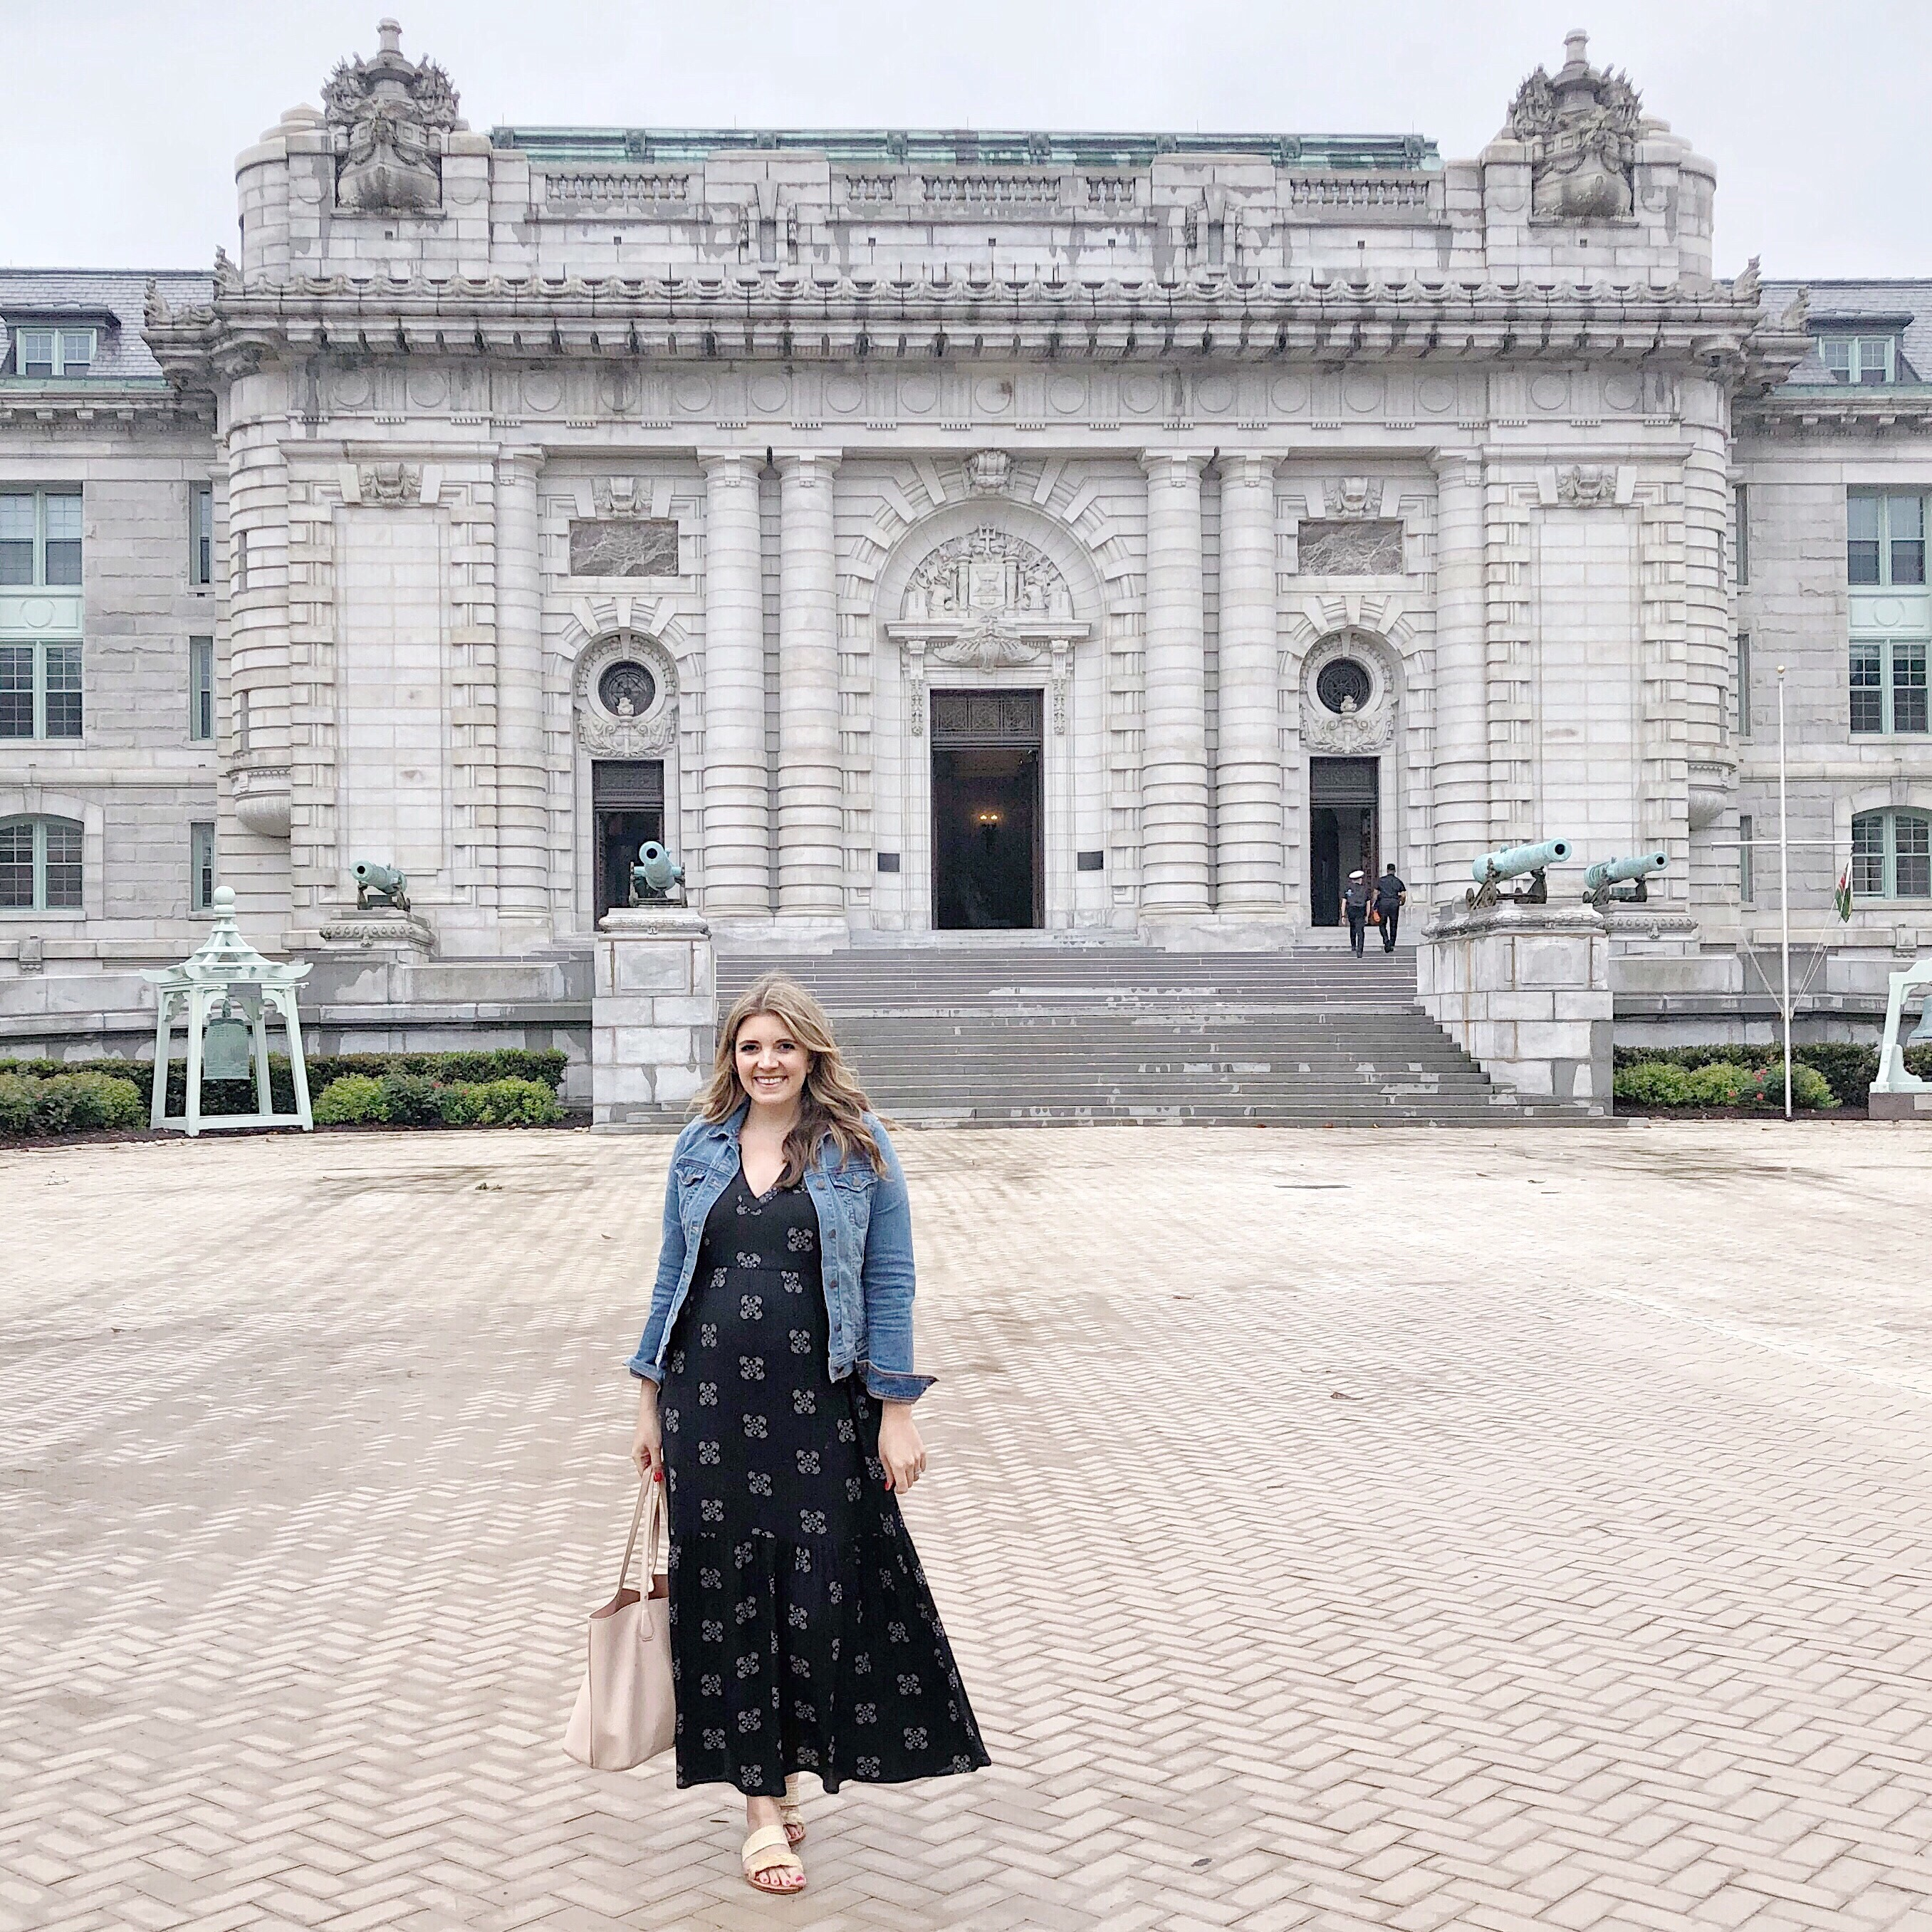 US Naval Academy Bancroft Hall | Don't miss the full Annapolis Weekend Guide: where to eat, what to do, and where to stay! | bylaurenm.com